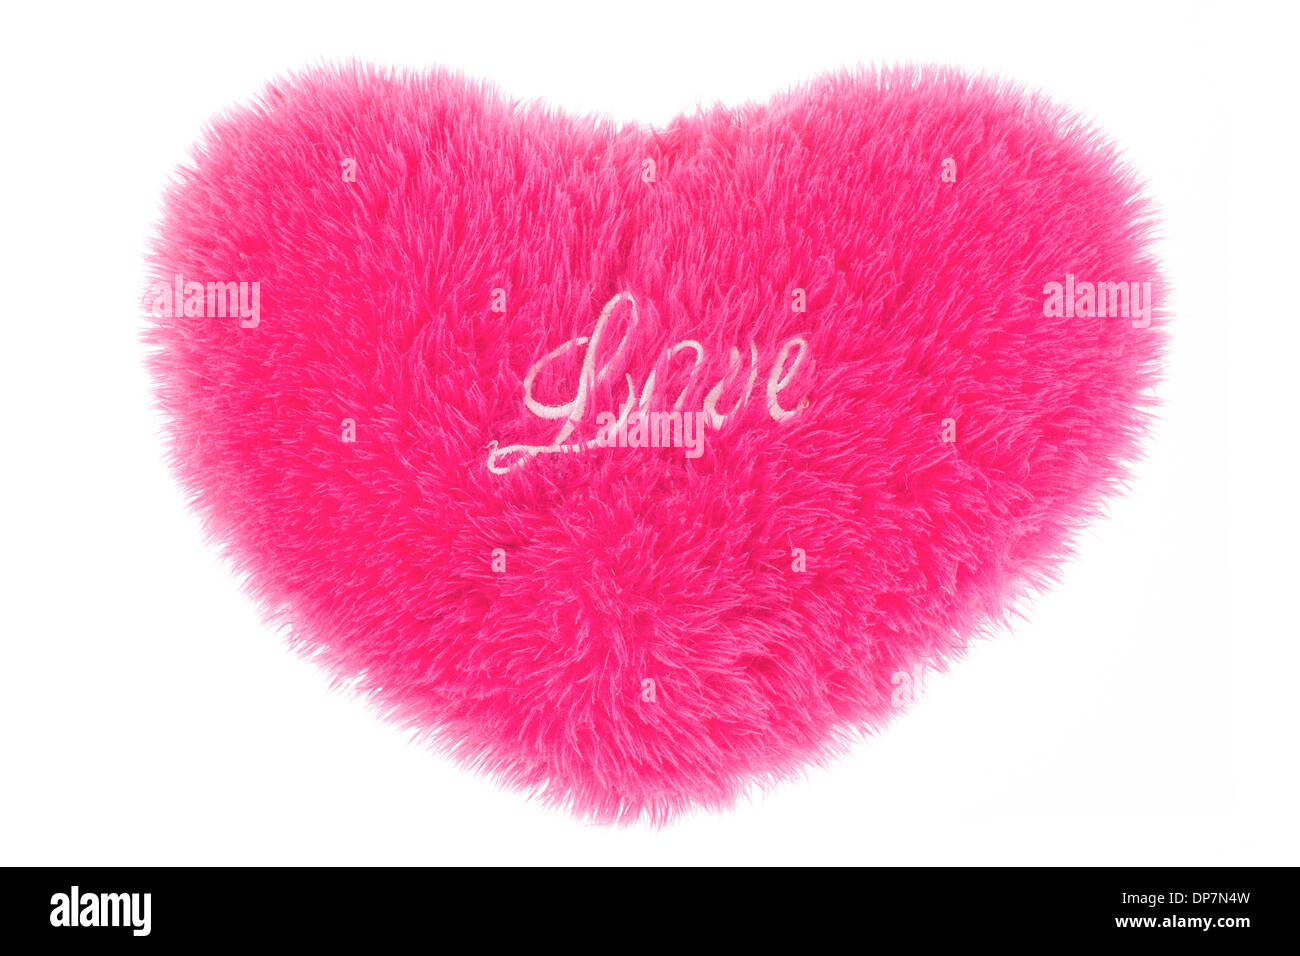 Fluffy Heart Shaped Pillow Isolated. Valentines Day.   Stock Image